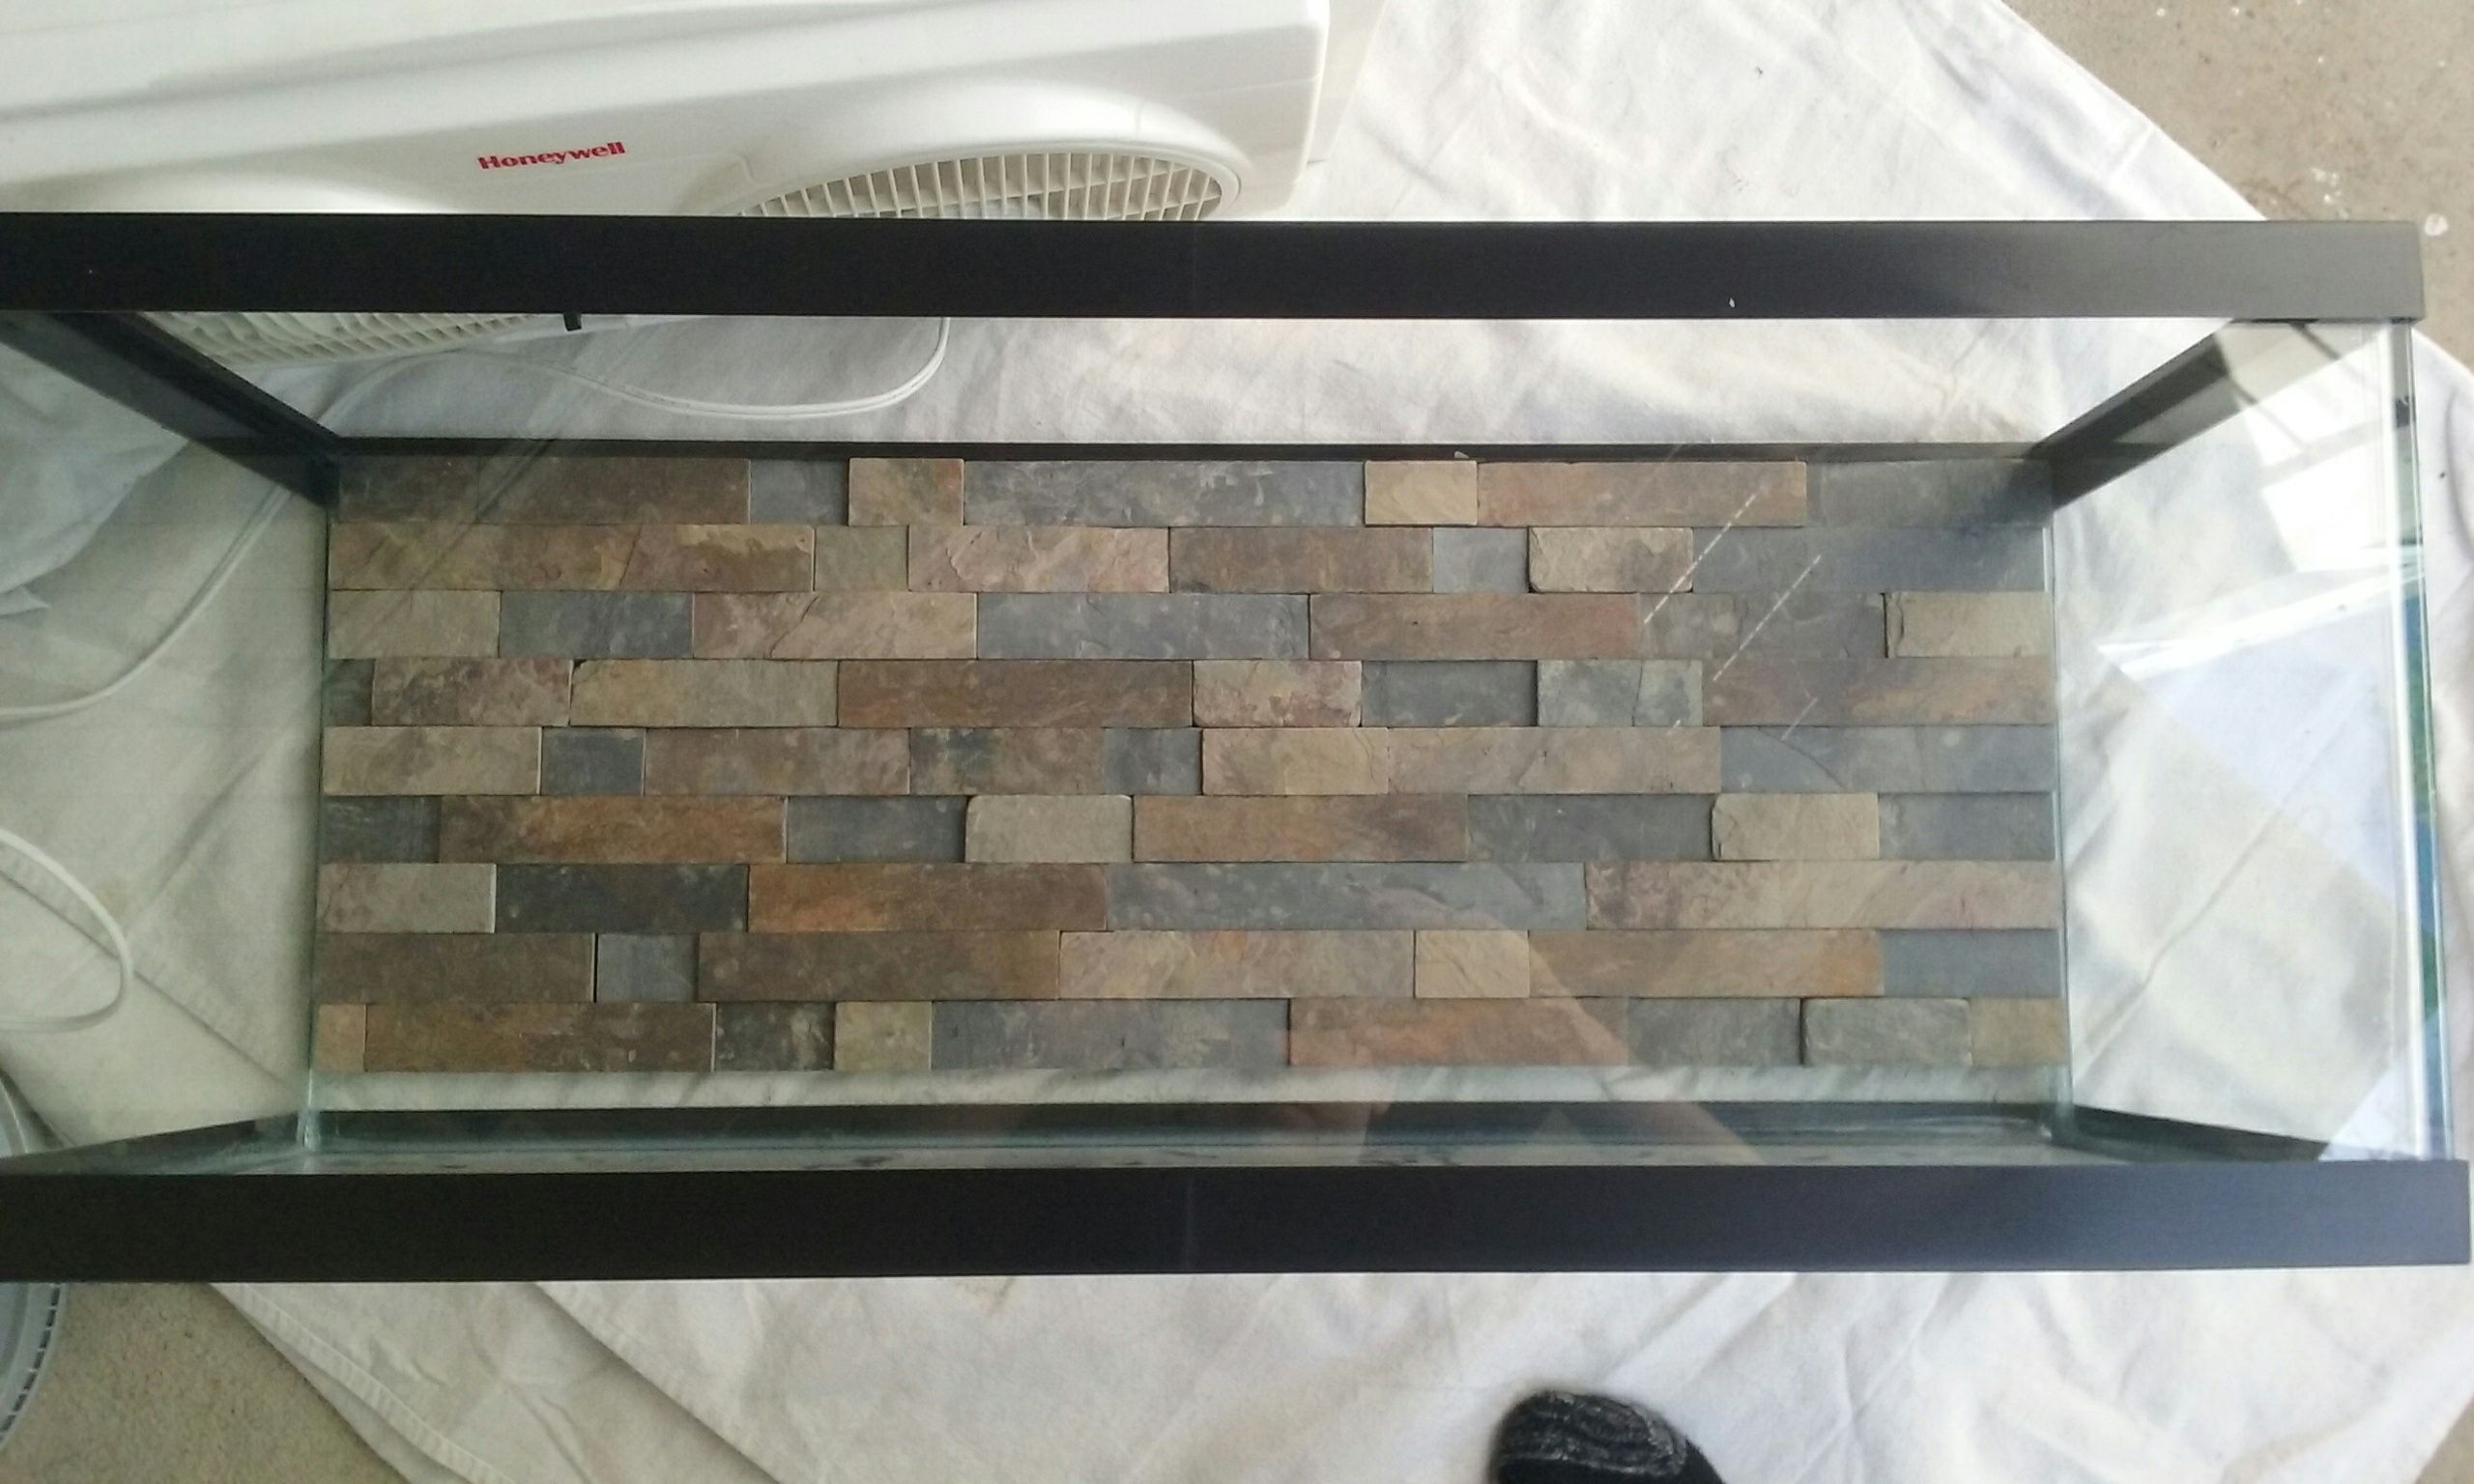 Just a teaser of my diy hand cut slate tile background on my soon to just a teaser of my diy hand cut slate tile background on my soon to be divided 20 gal planted betta tank full album to come once its all set up solutioingenieria Image collections